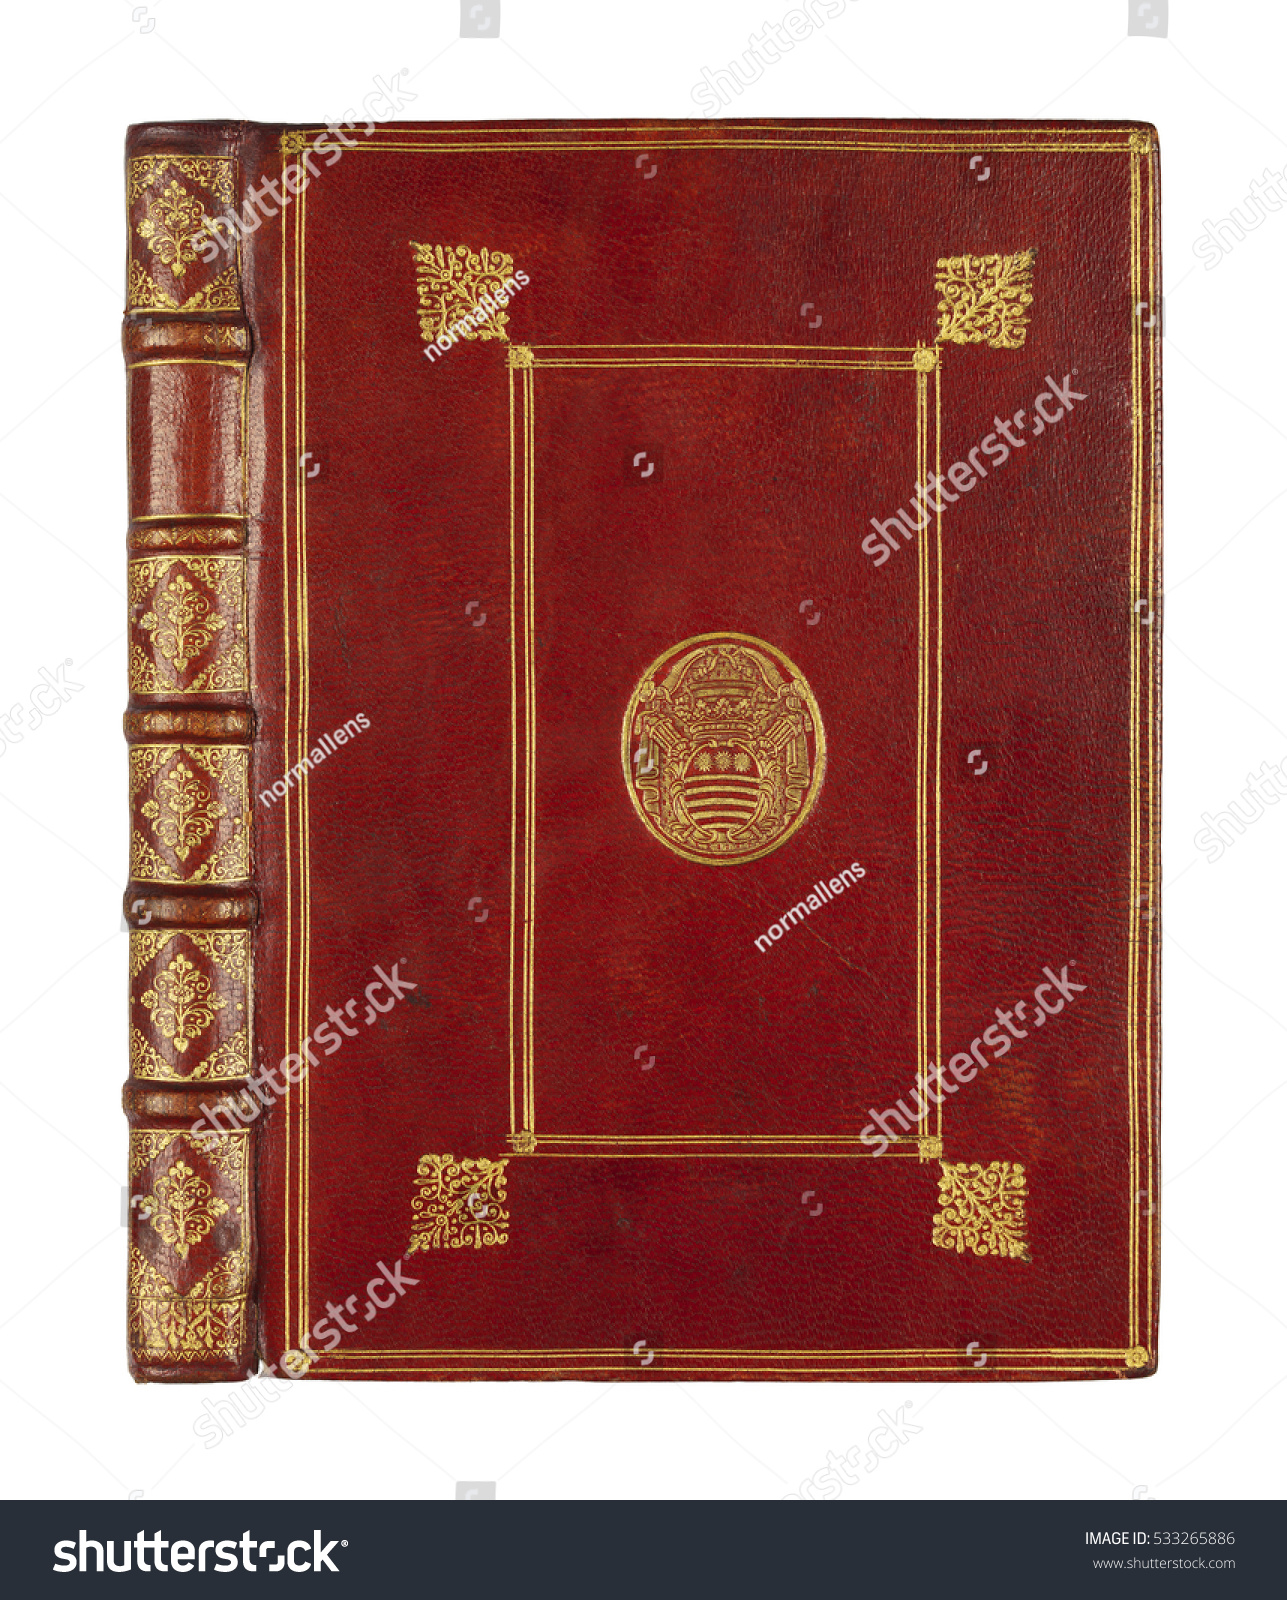 Vintage Book Cover Photo : Old book cover binding stock photo